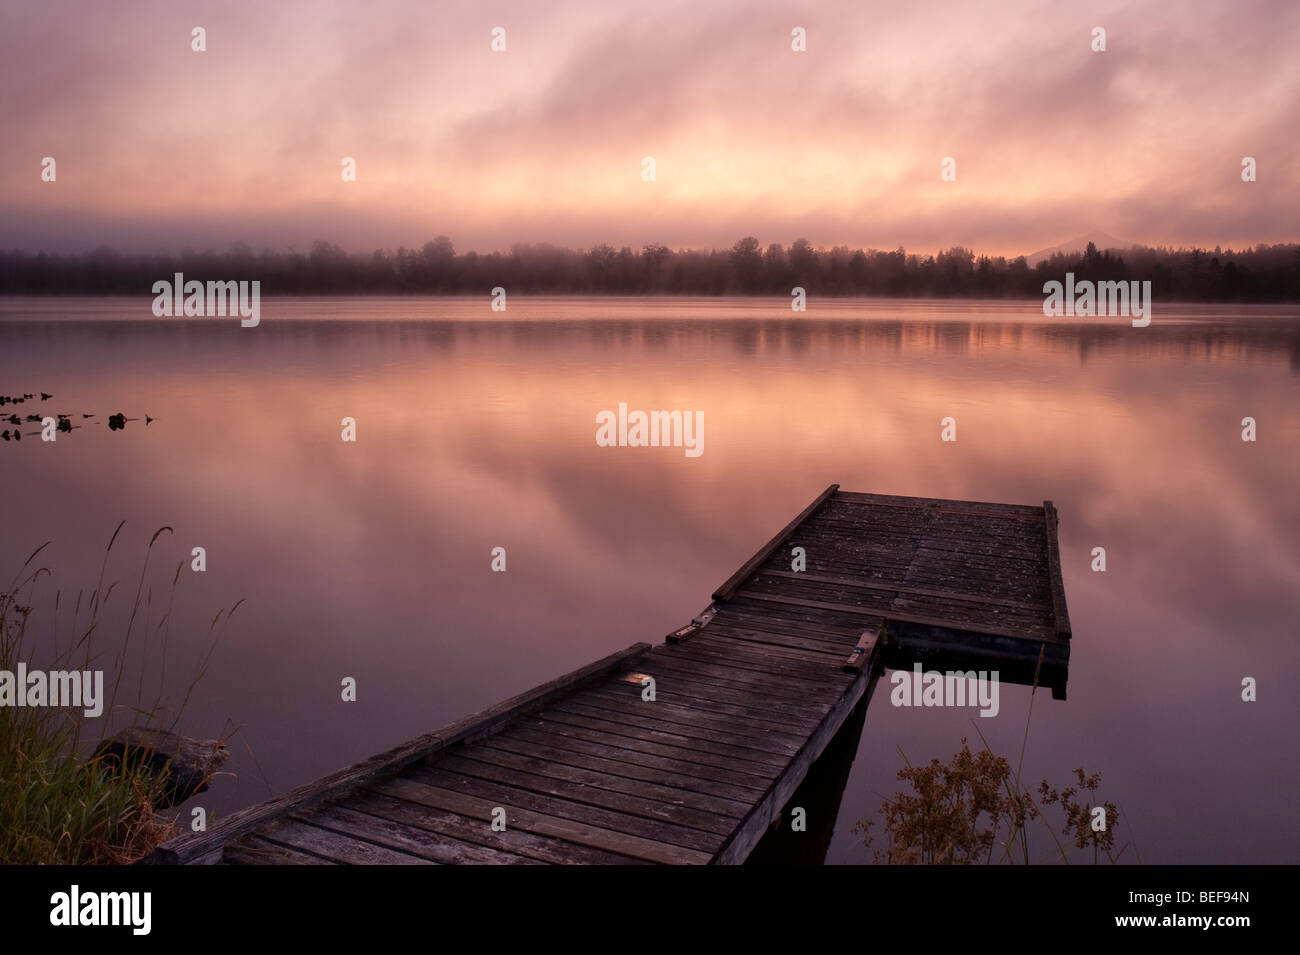 Lake Cassidy sunrise in fog with dock - Stock Image